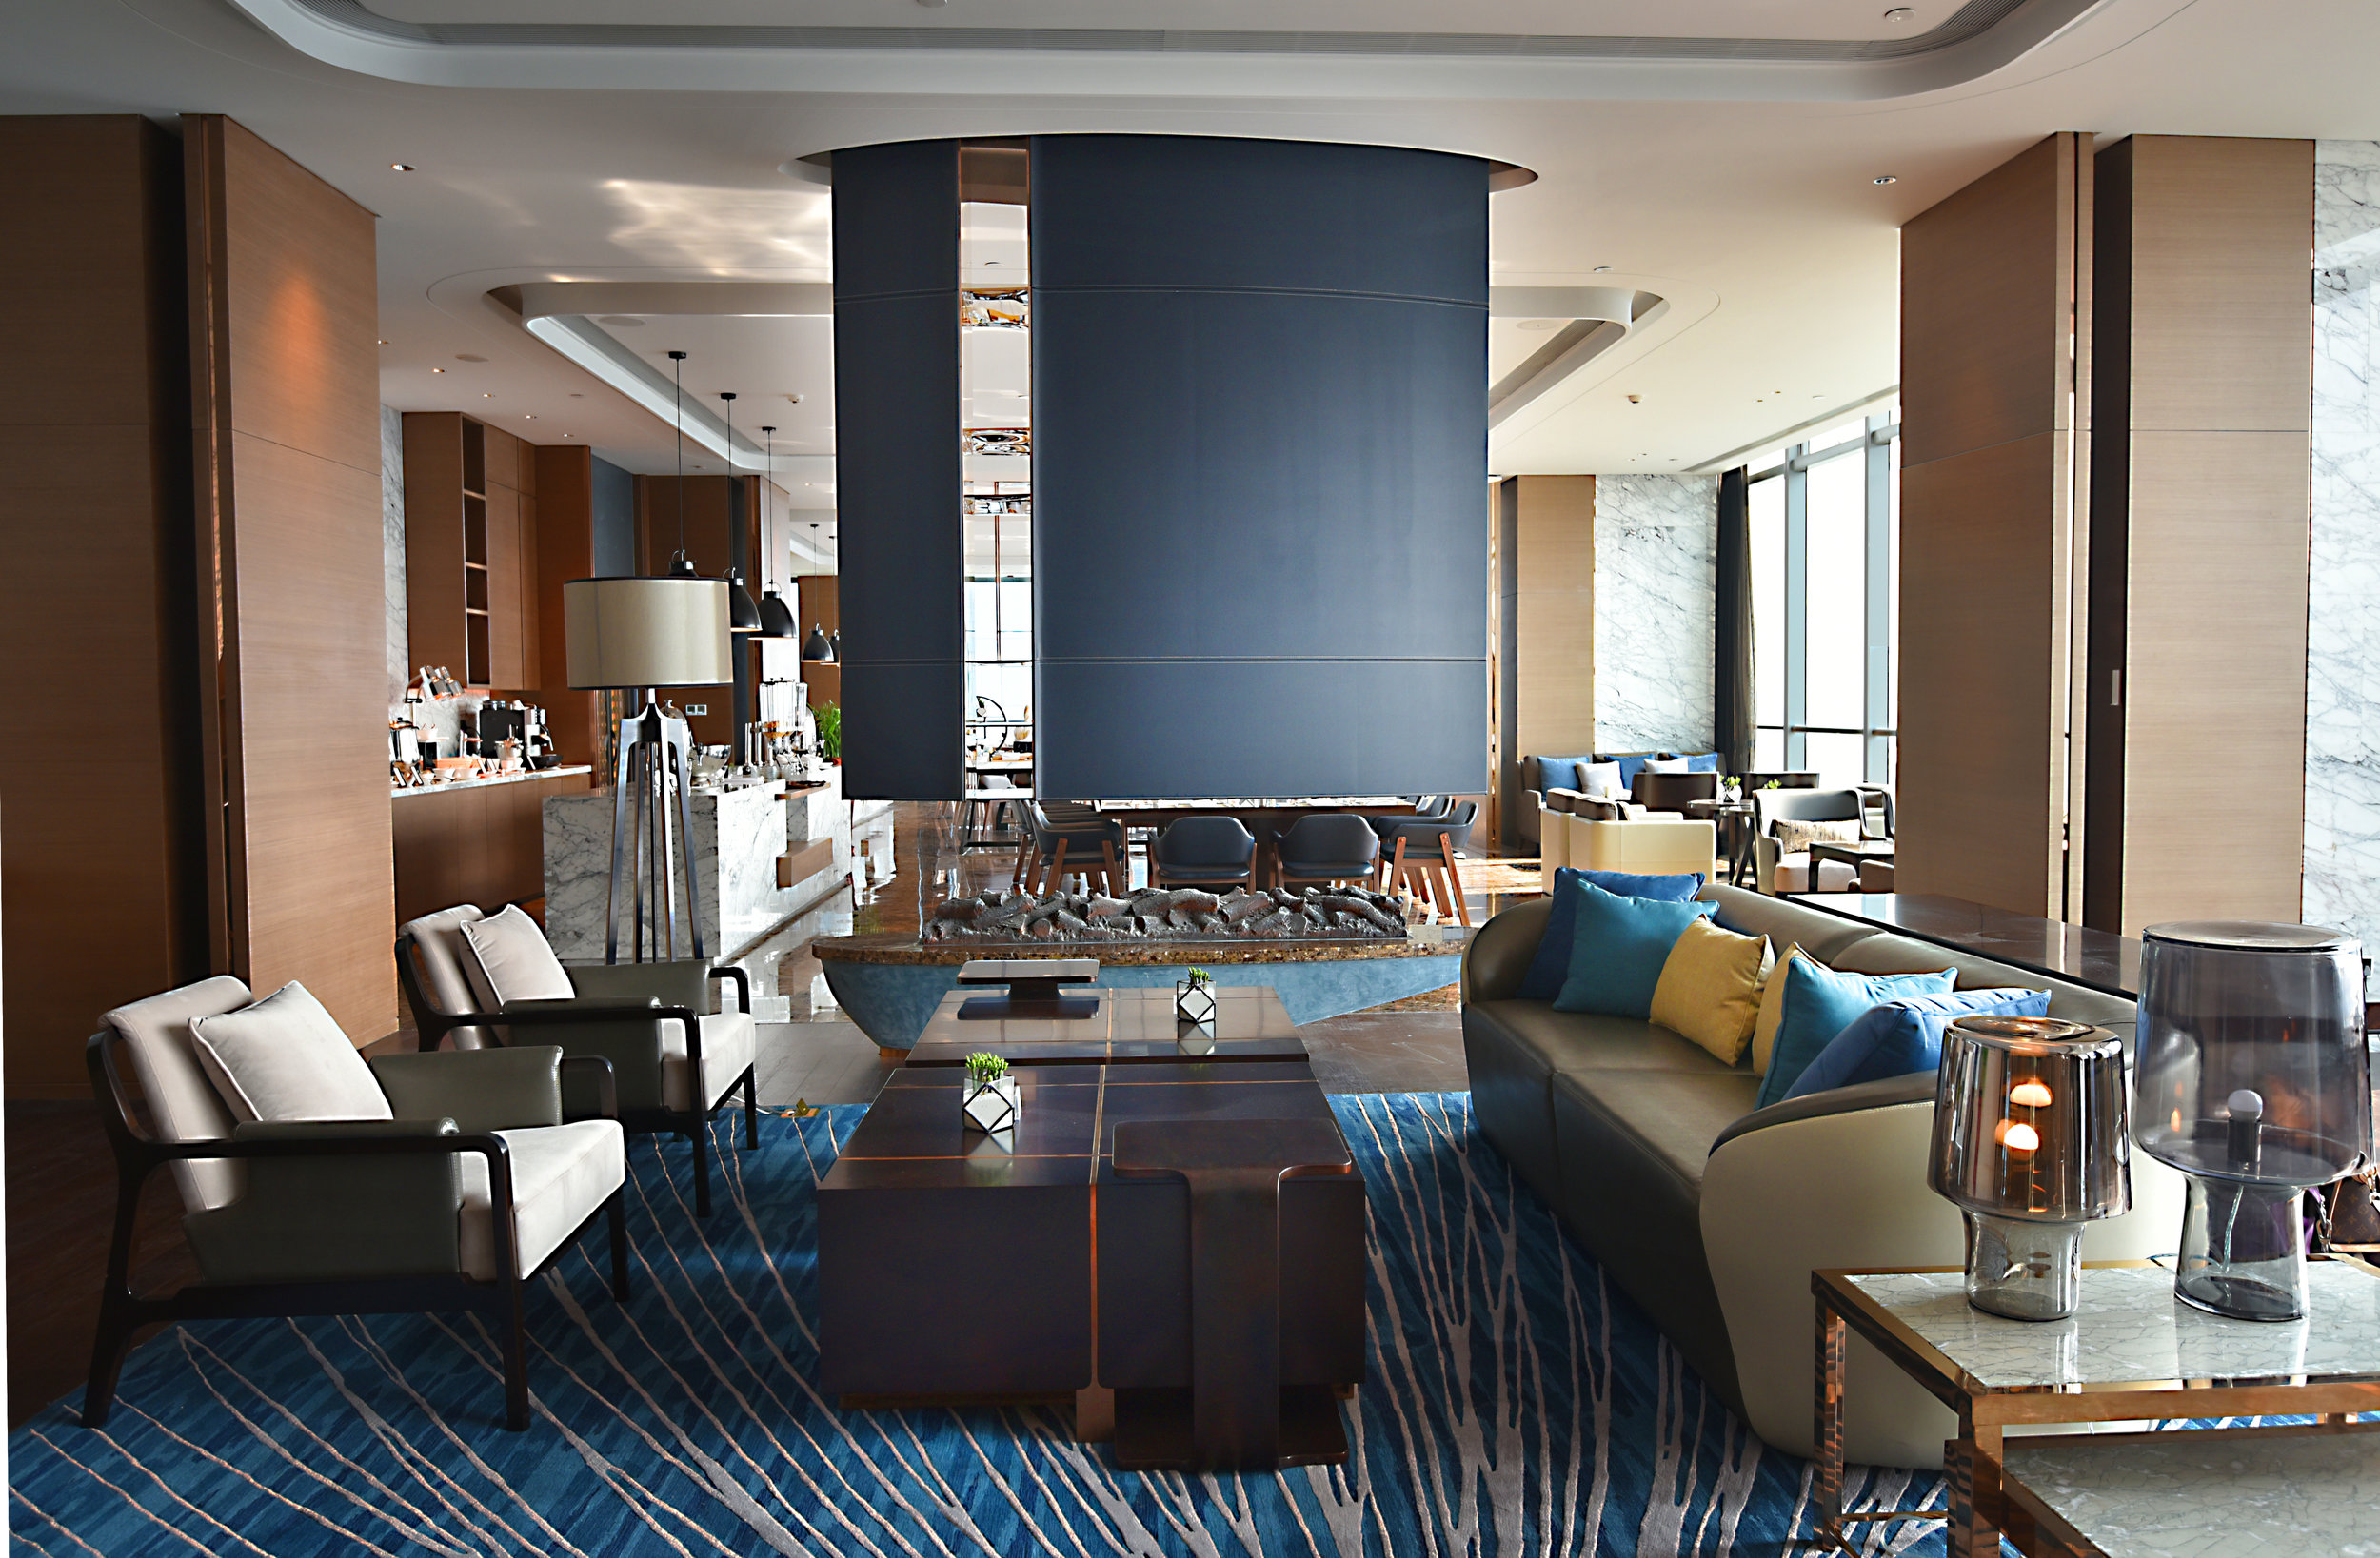 Decorative soft free-standing leather panels further layer these spaces with a nod to delicate stitching details and aquifer-inspired artwork.